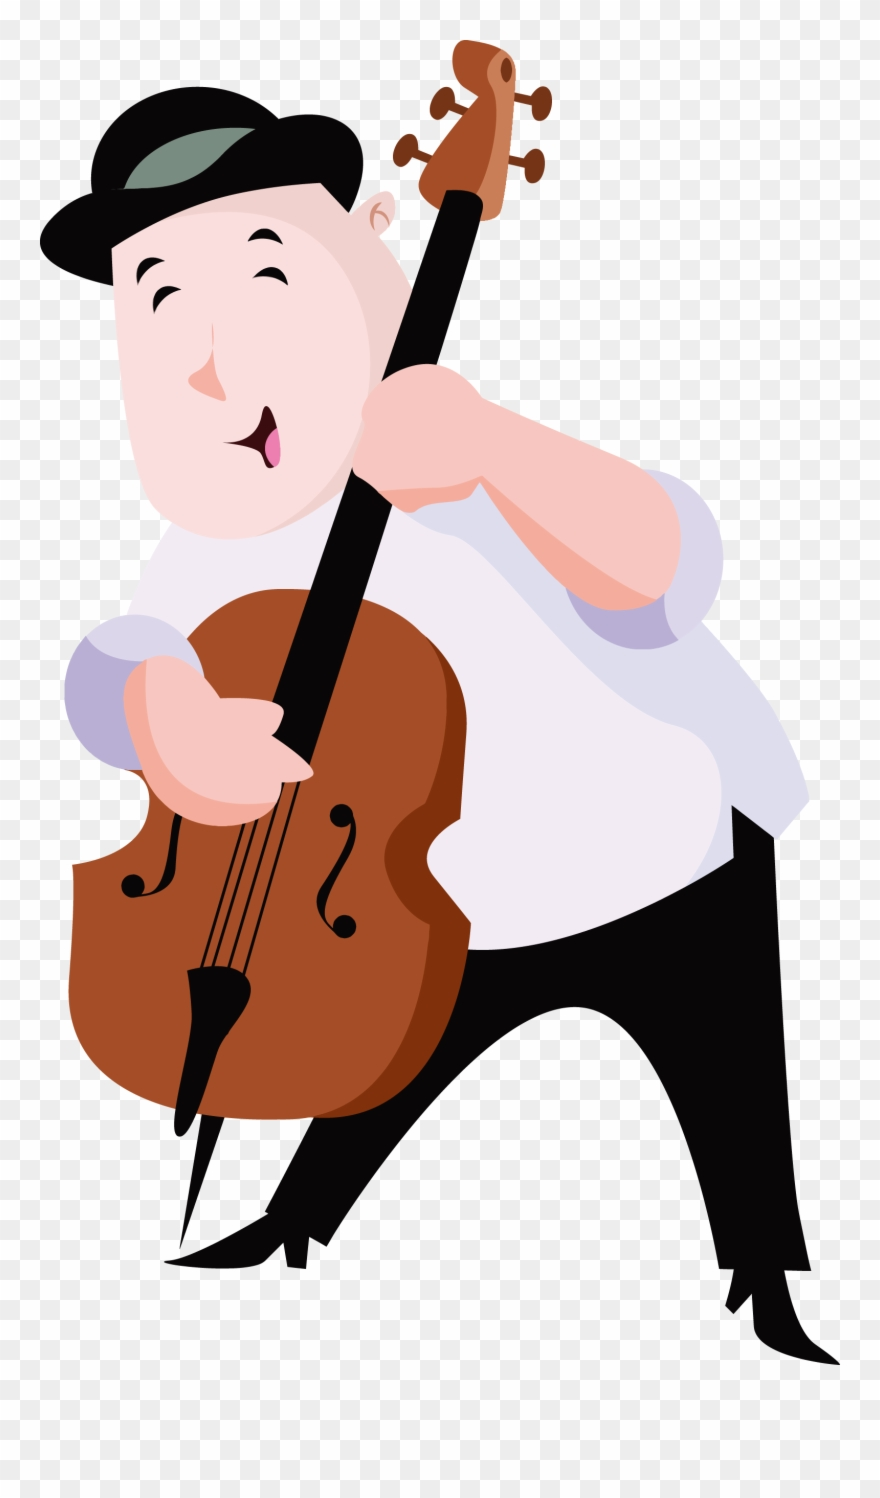 Cello clipart chinese american. Picture library stock